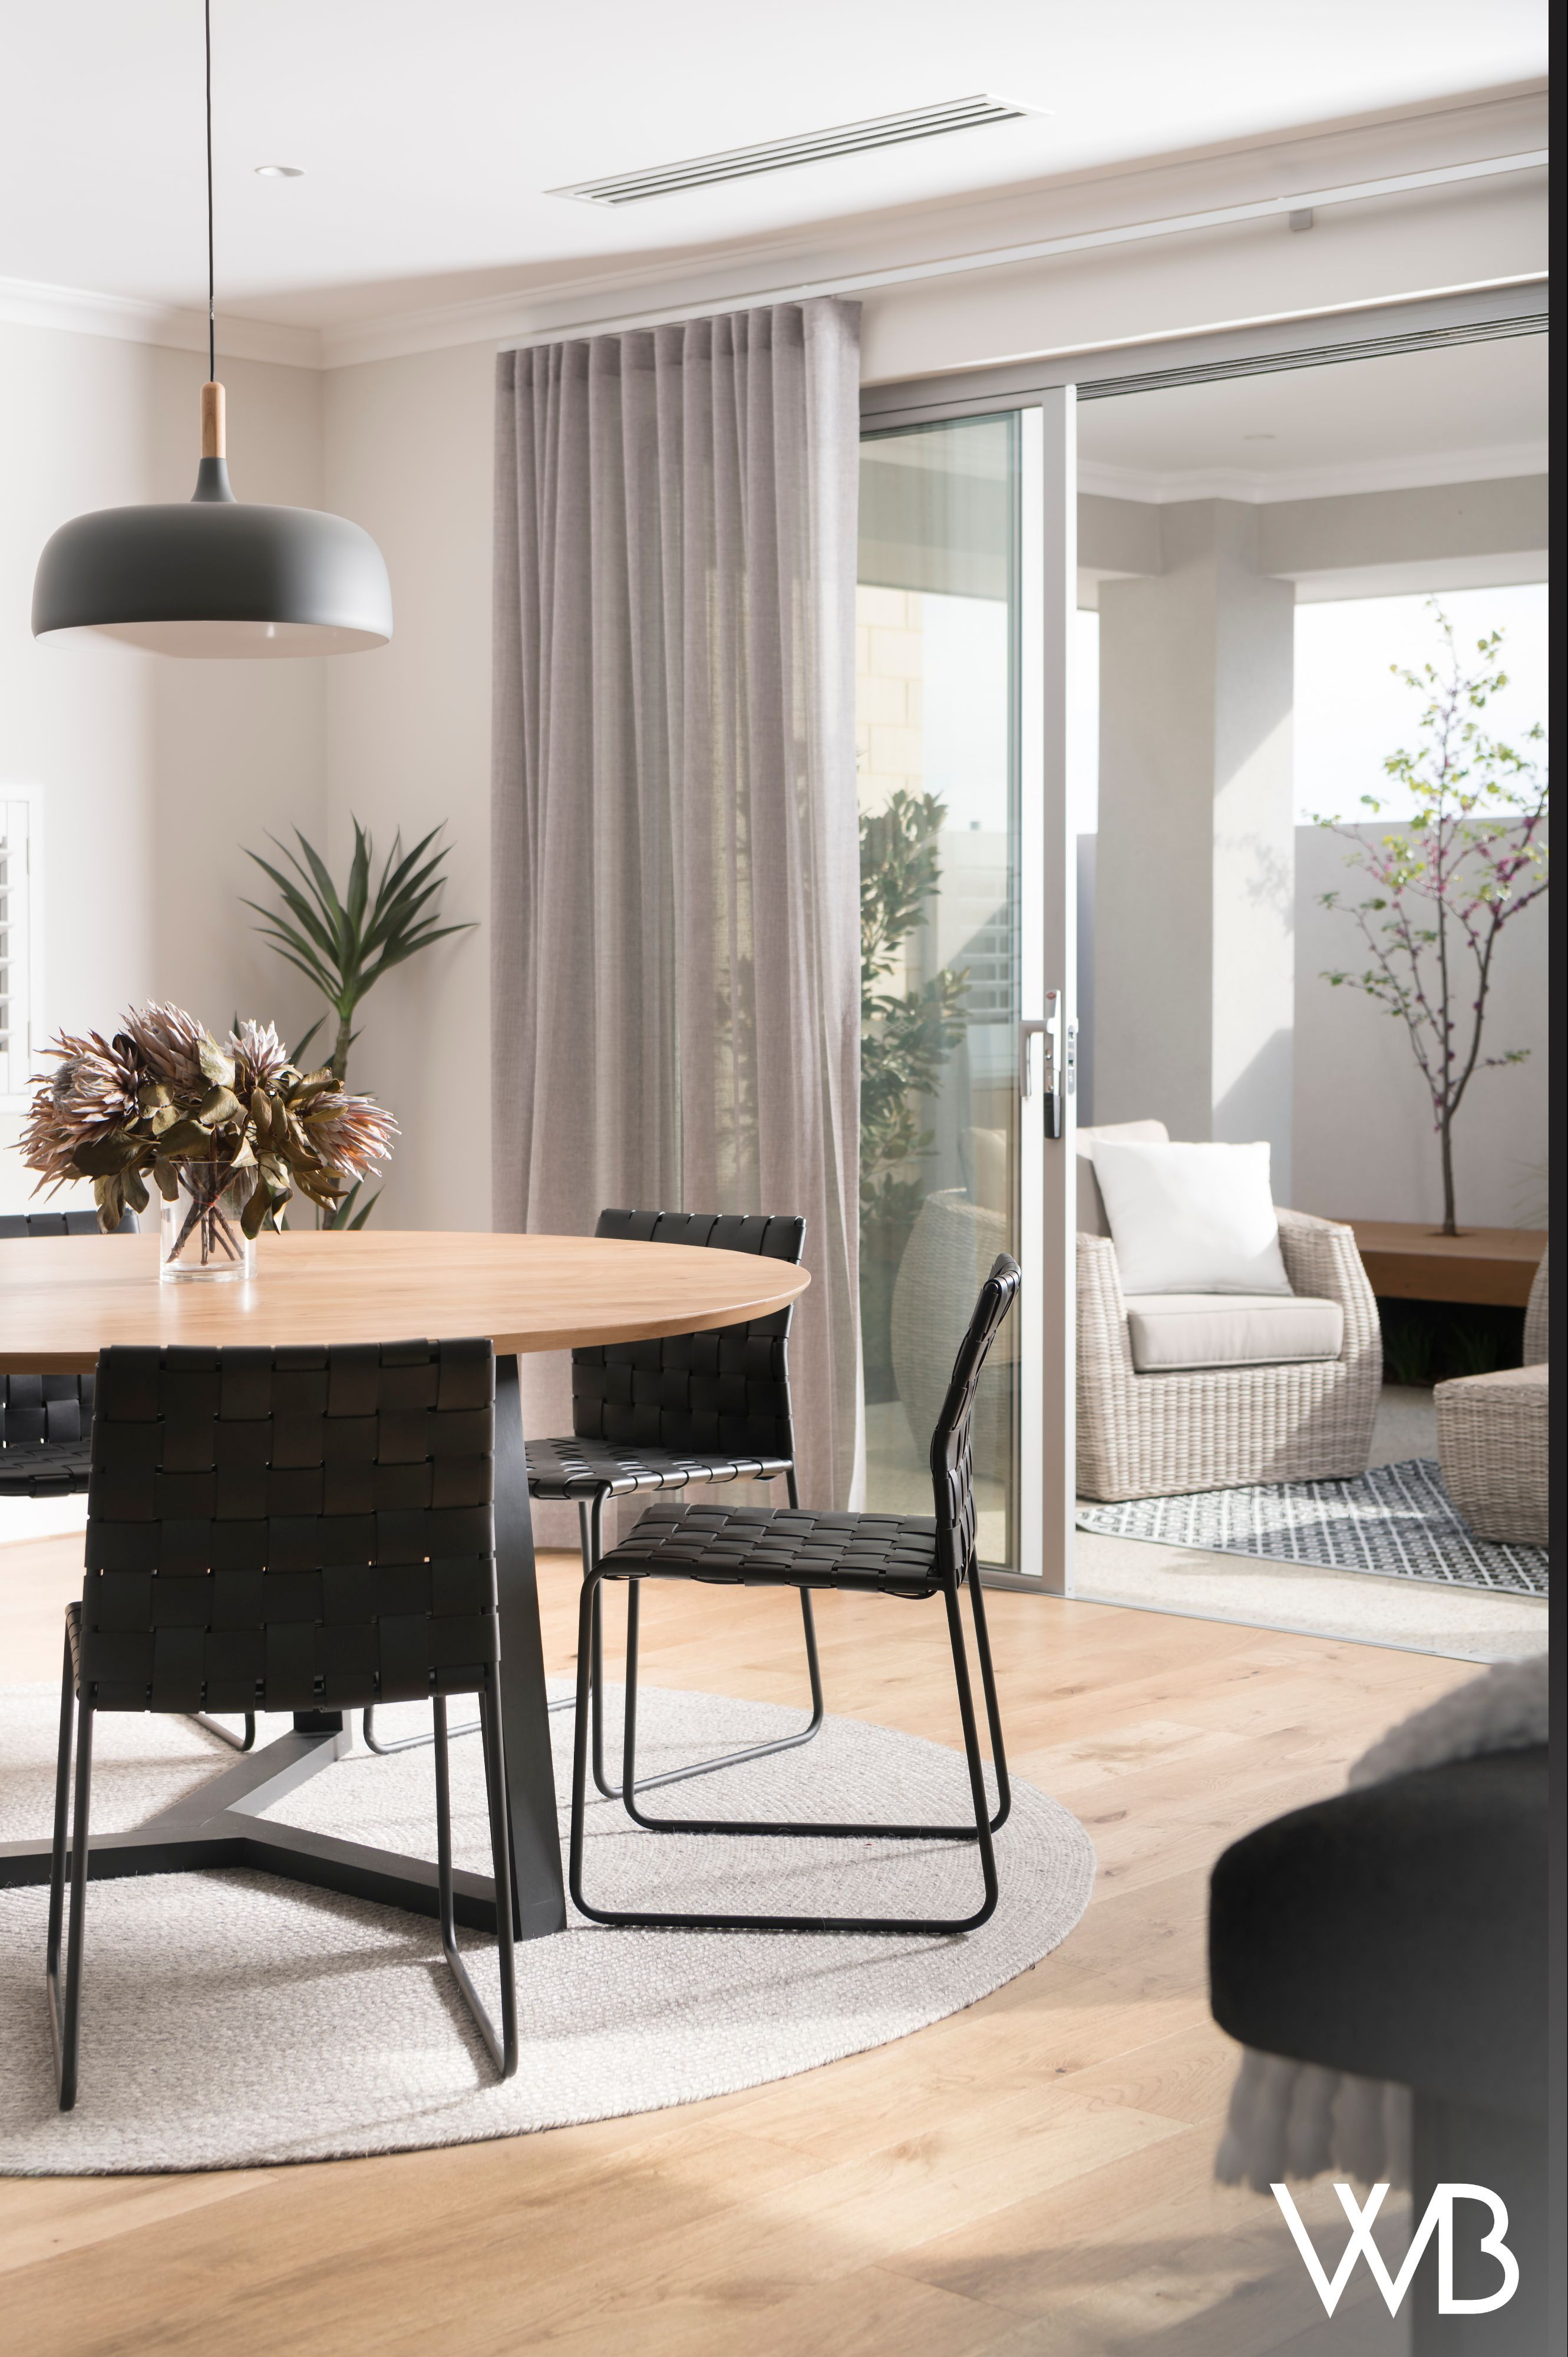 Designed To Bring Coastal Chic To Any Street The Phoenix Features Intelligent Design Ideas Behind An Ultra Scandinavian Style Home Living Design Display Homes